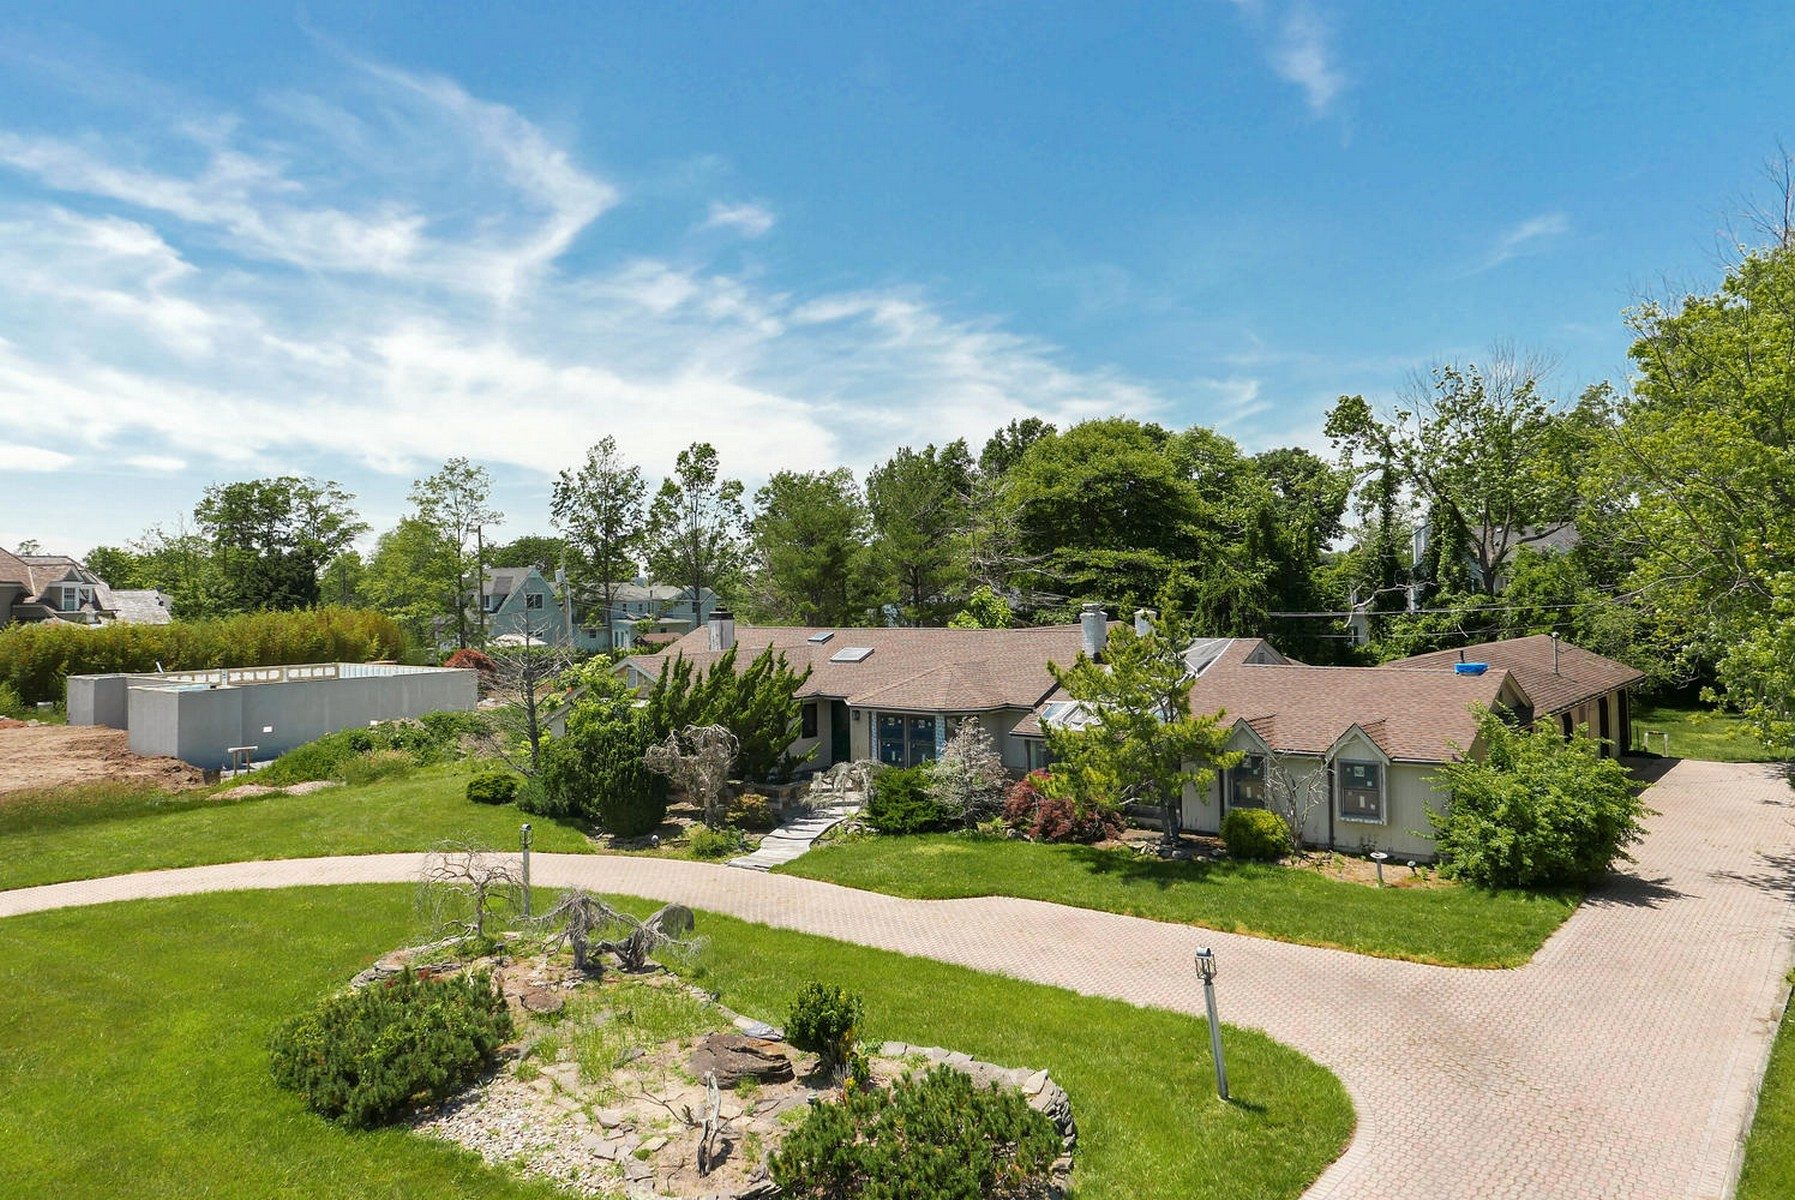 Single Family Home for Sale at Gooseneck Section of Oceanport 27 Shore Rd Oceanport, New Jersey, 07757 United States